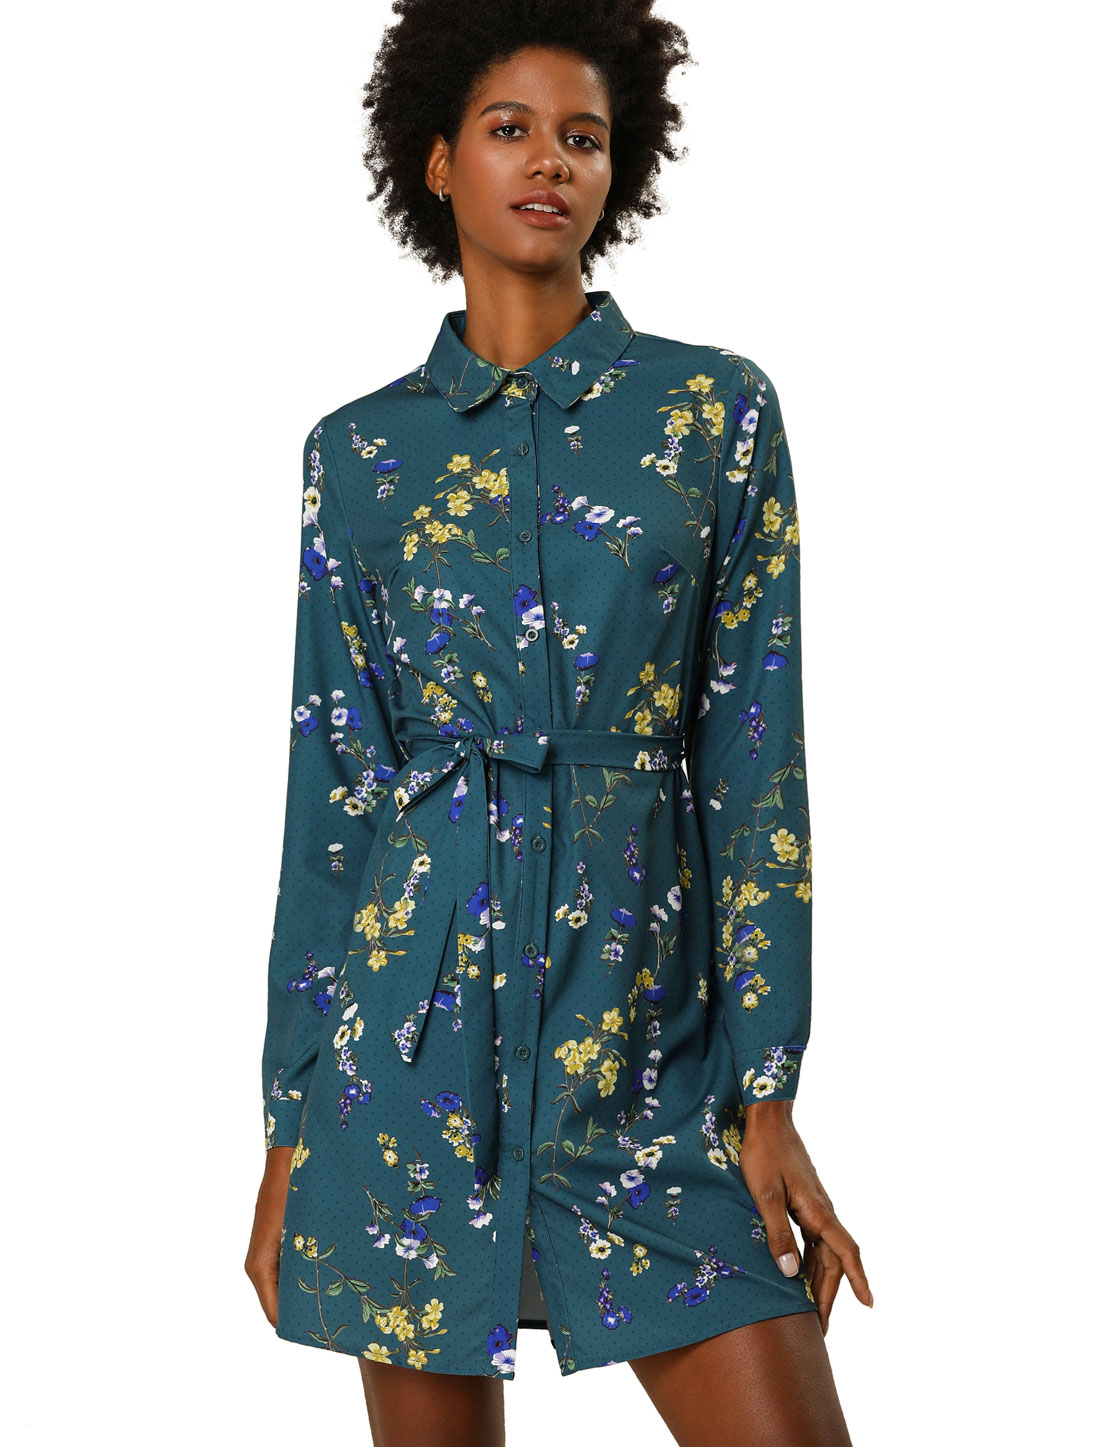 Allegra K Women's Button Down Polka Dots Floral Shirt Dress Teal Blue L